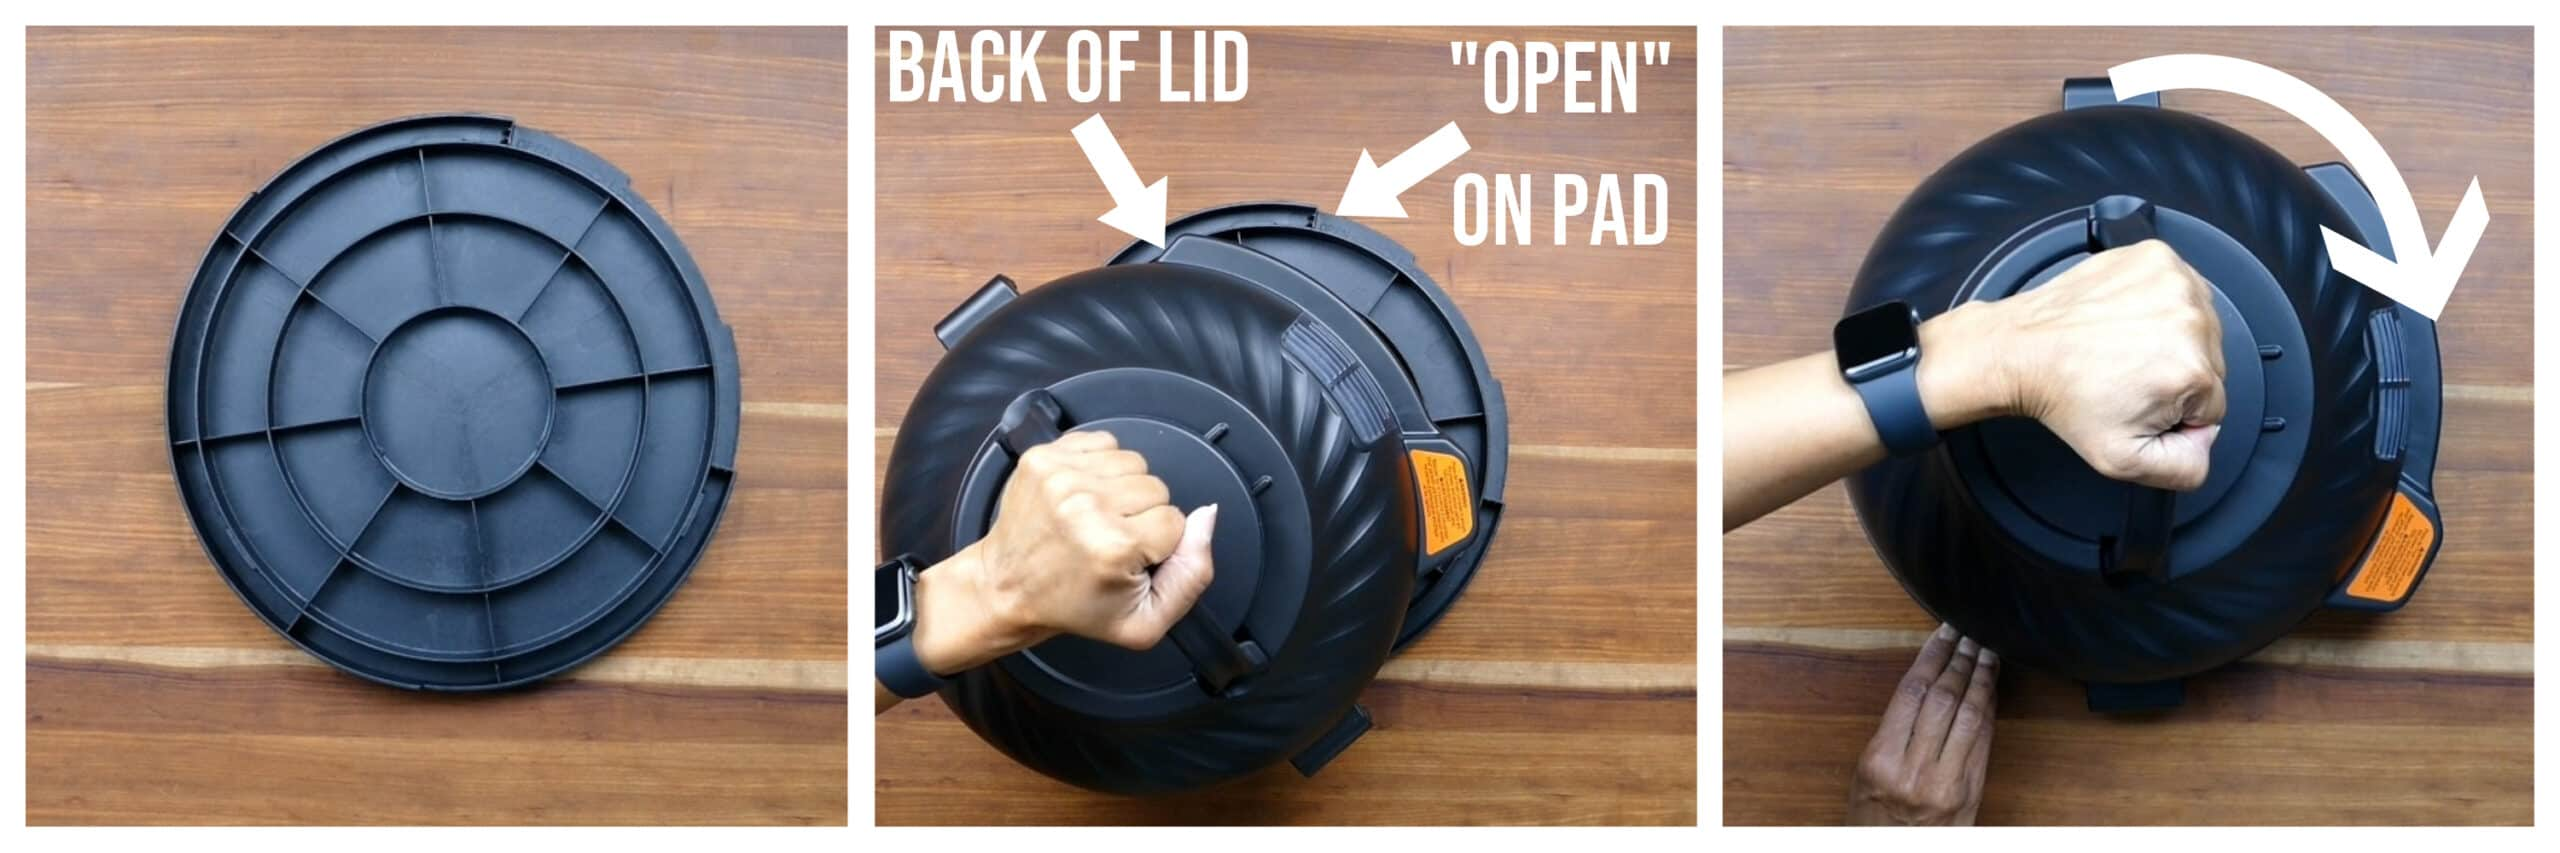 Instant Pot Duo Crisp collage - protective pad on wood counter, arrow pointing to back of lid and